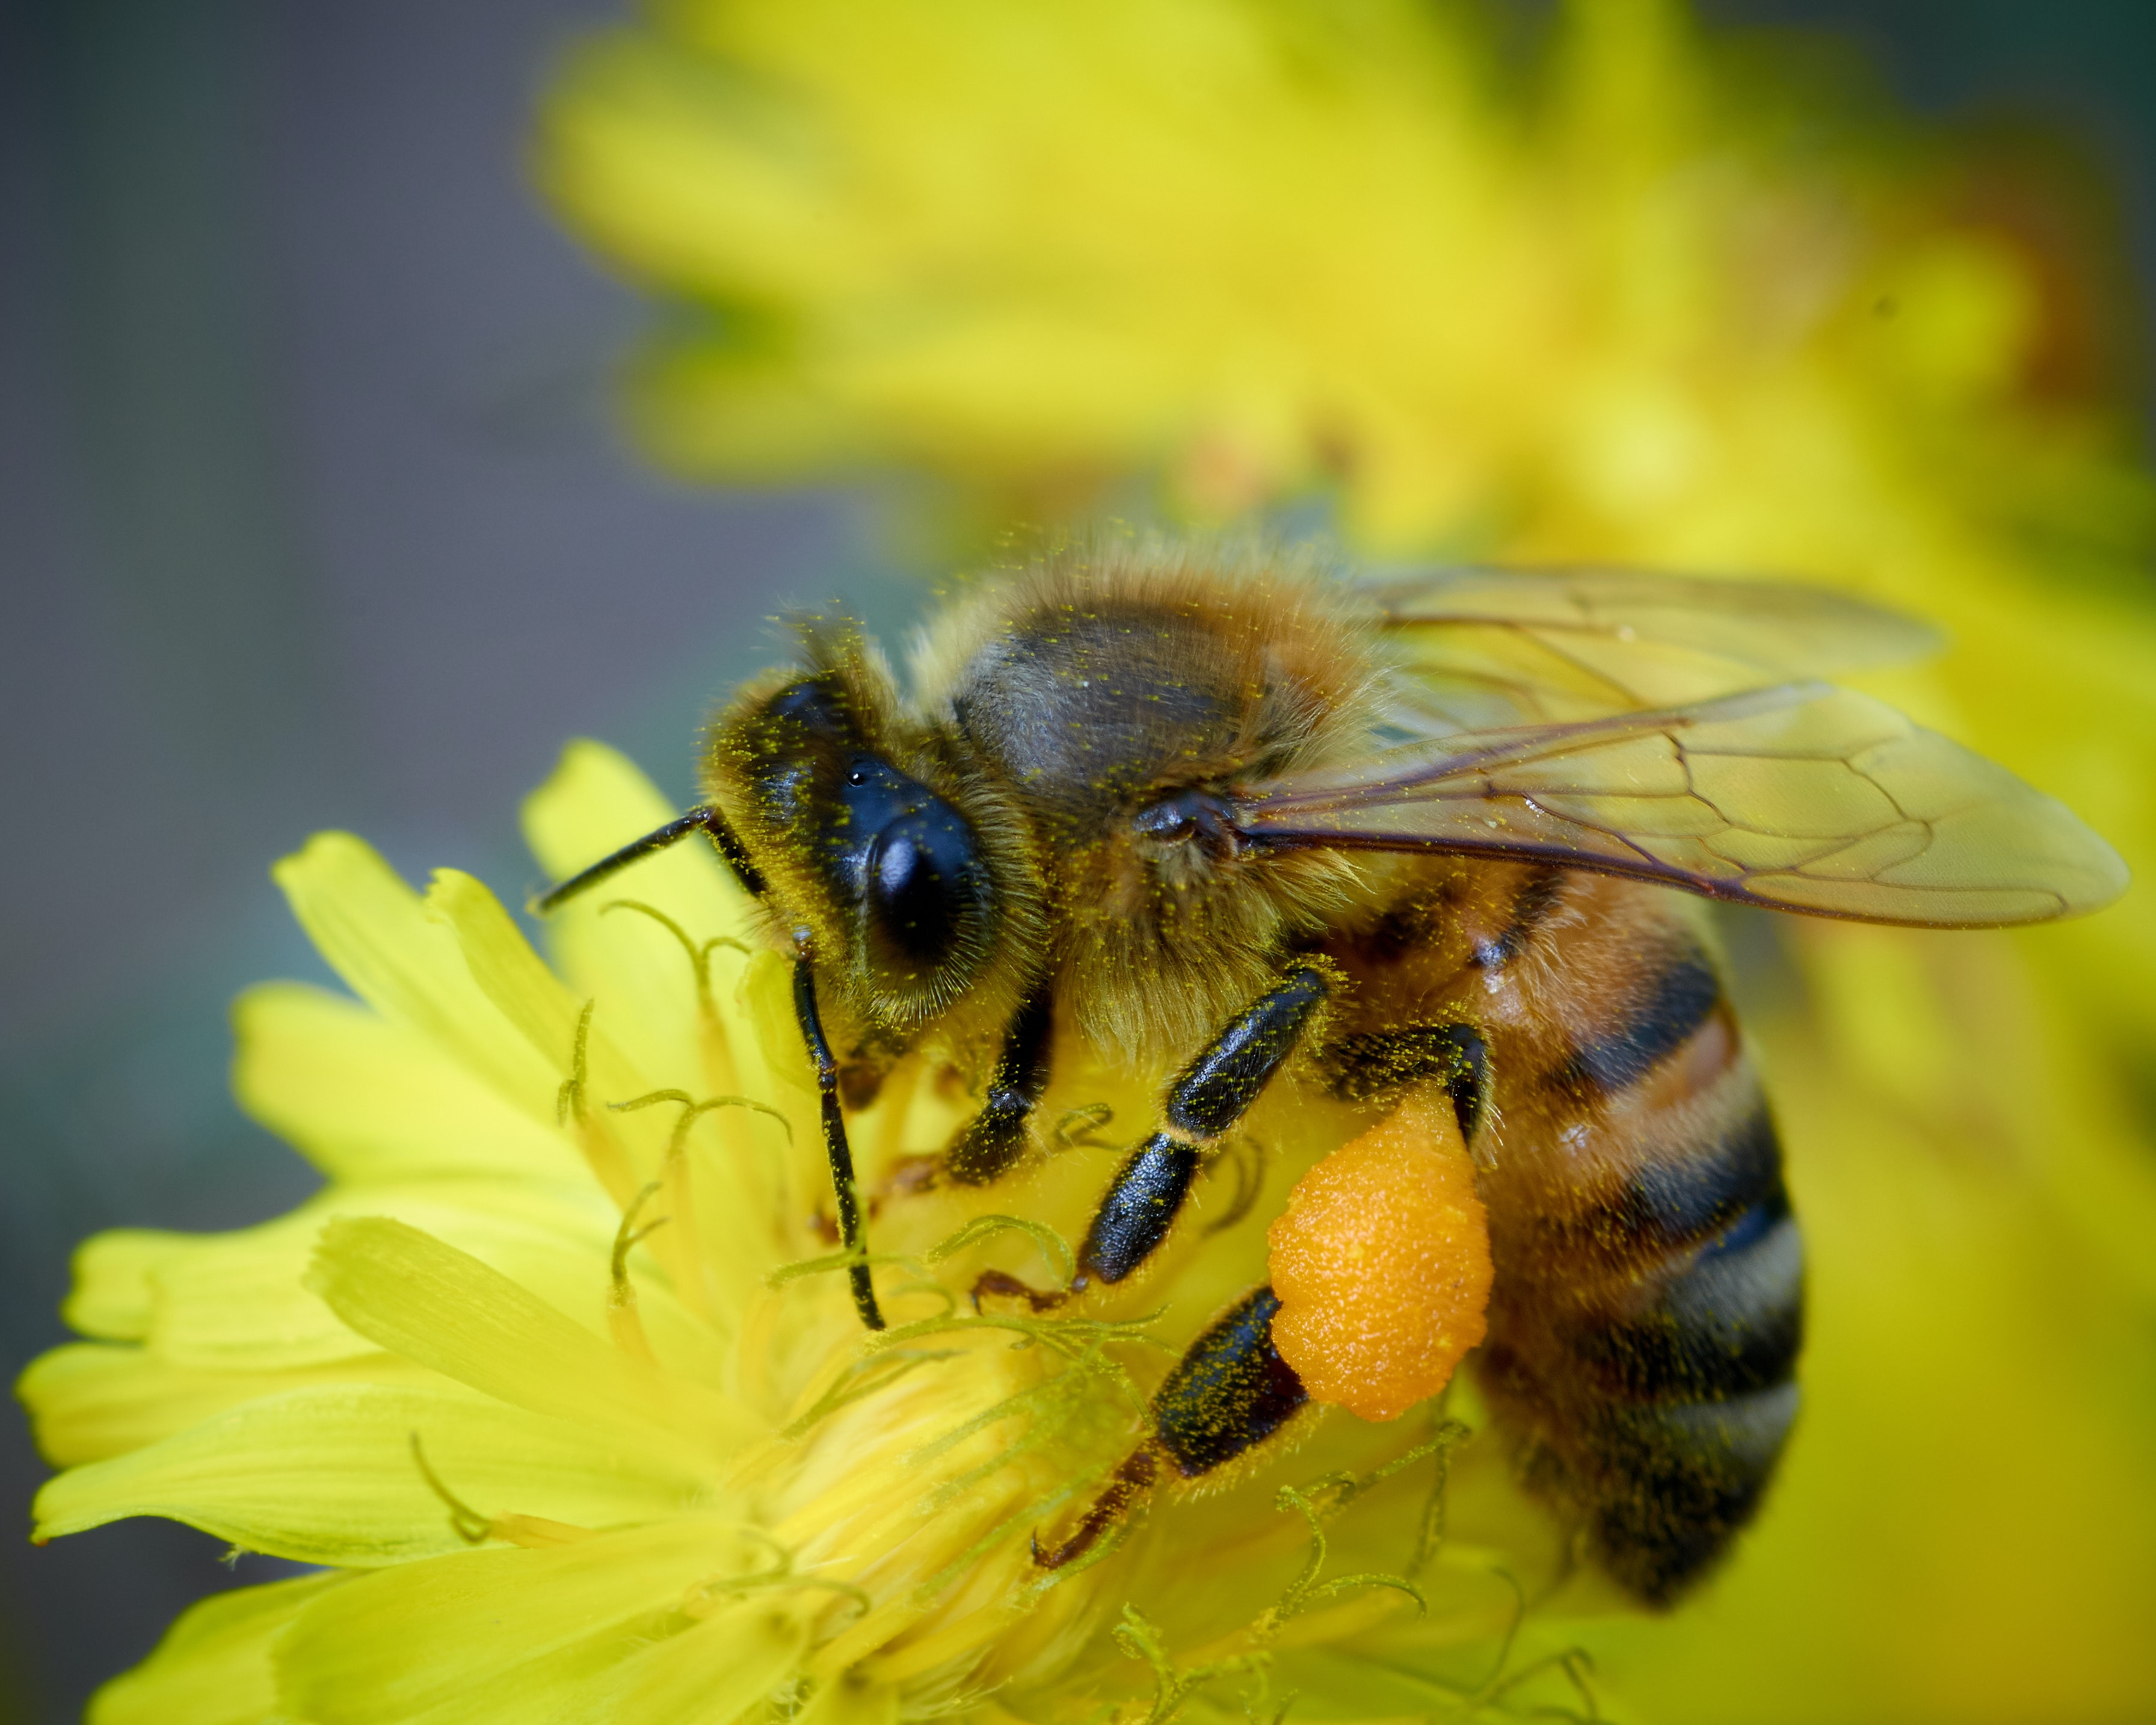 close-up photography of yellow and black honeybee on yellow dandelion flower